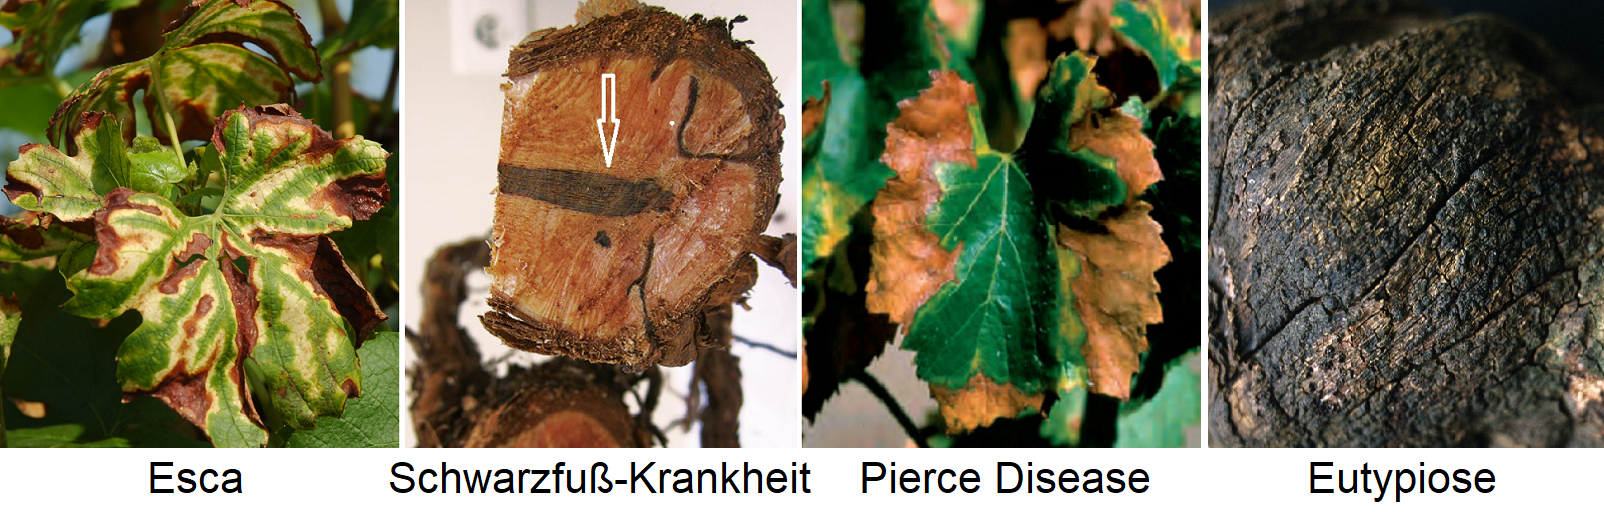 Necrosis - Esca (leaf), Black Foot Disease (root), Pierce Disease (leaf) and Eutypiose (wood)